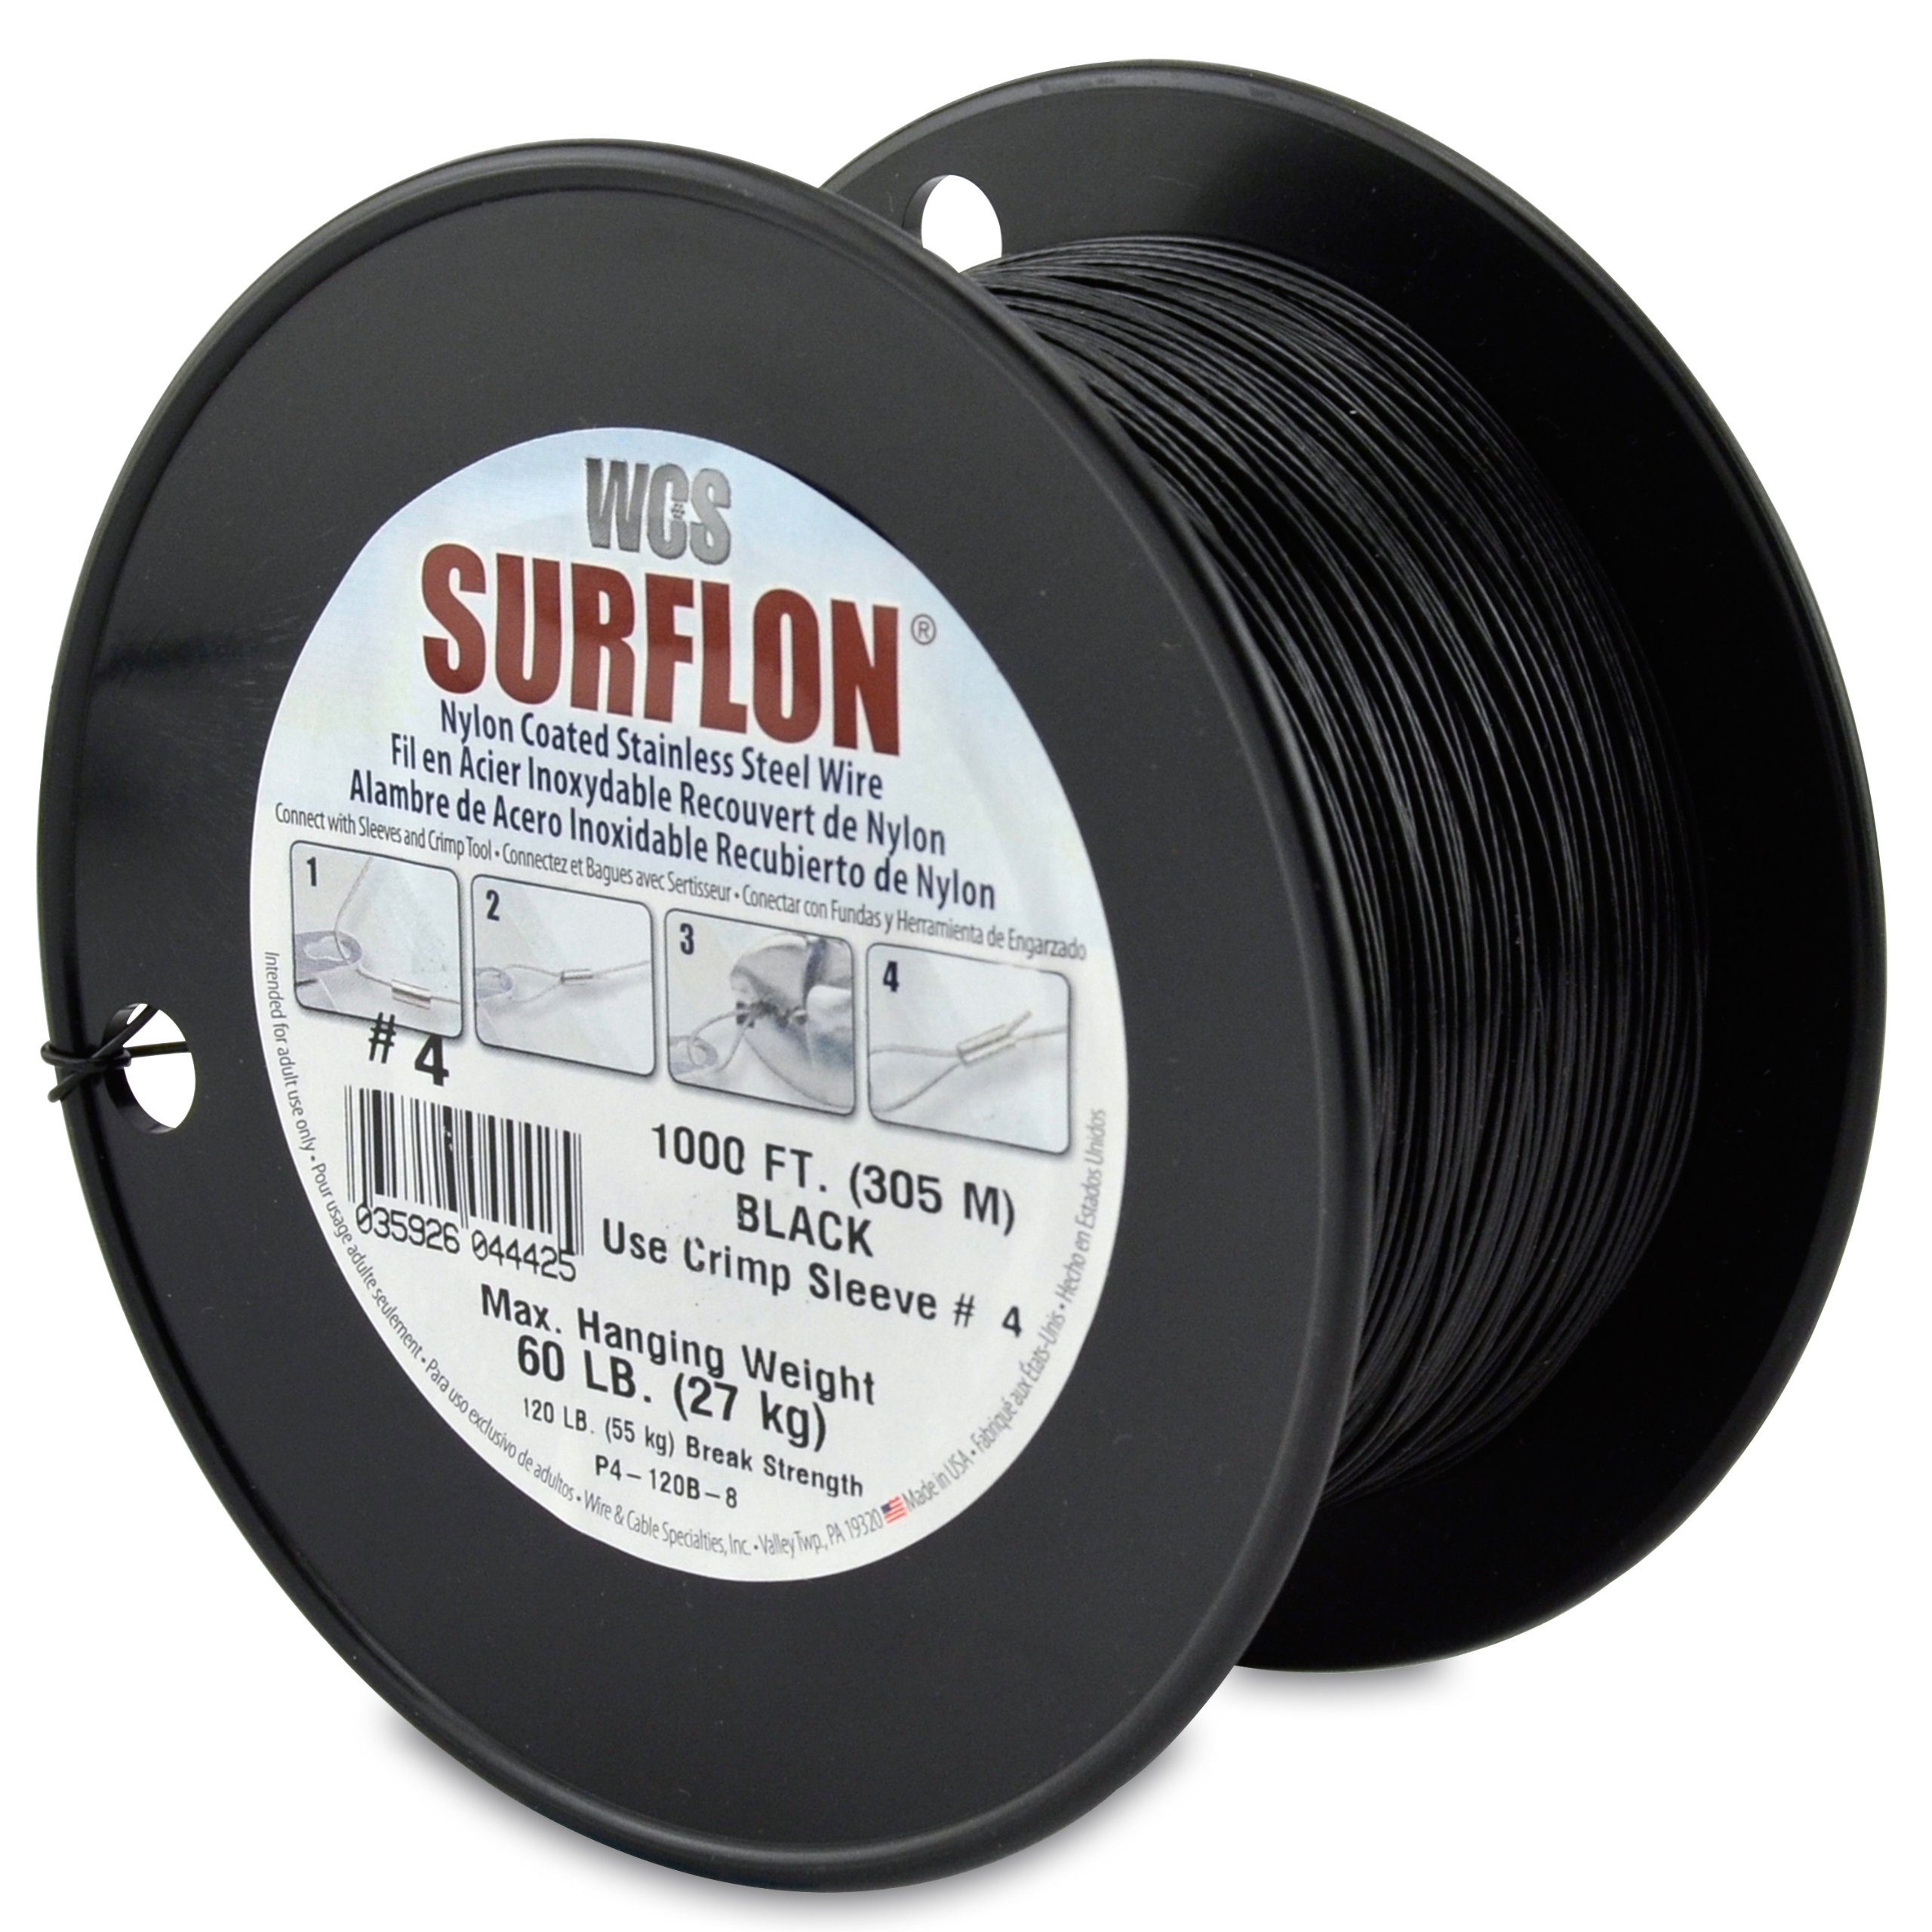 Surflon Size 4-60-Pound Break 1000-Feet Crimping Picture Wire Nylon Coated Stainless Steel, Black by Wire & Cable Specialties